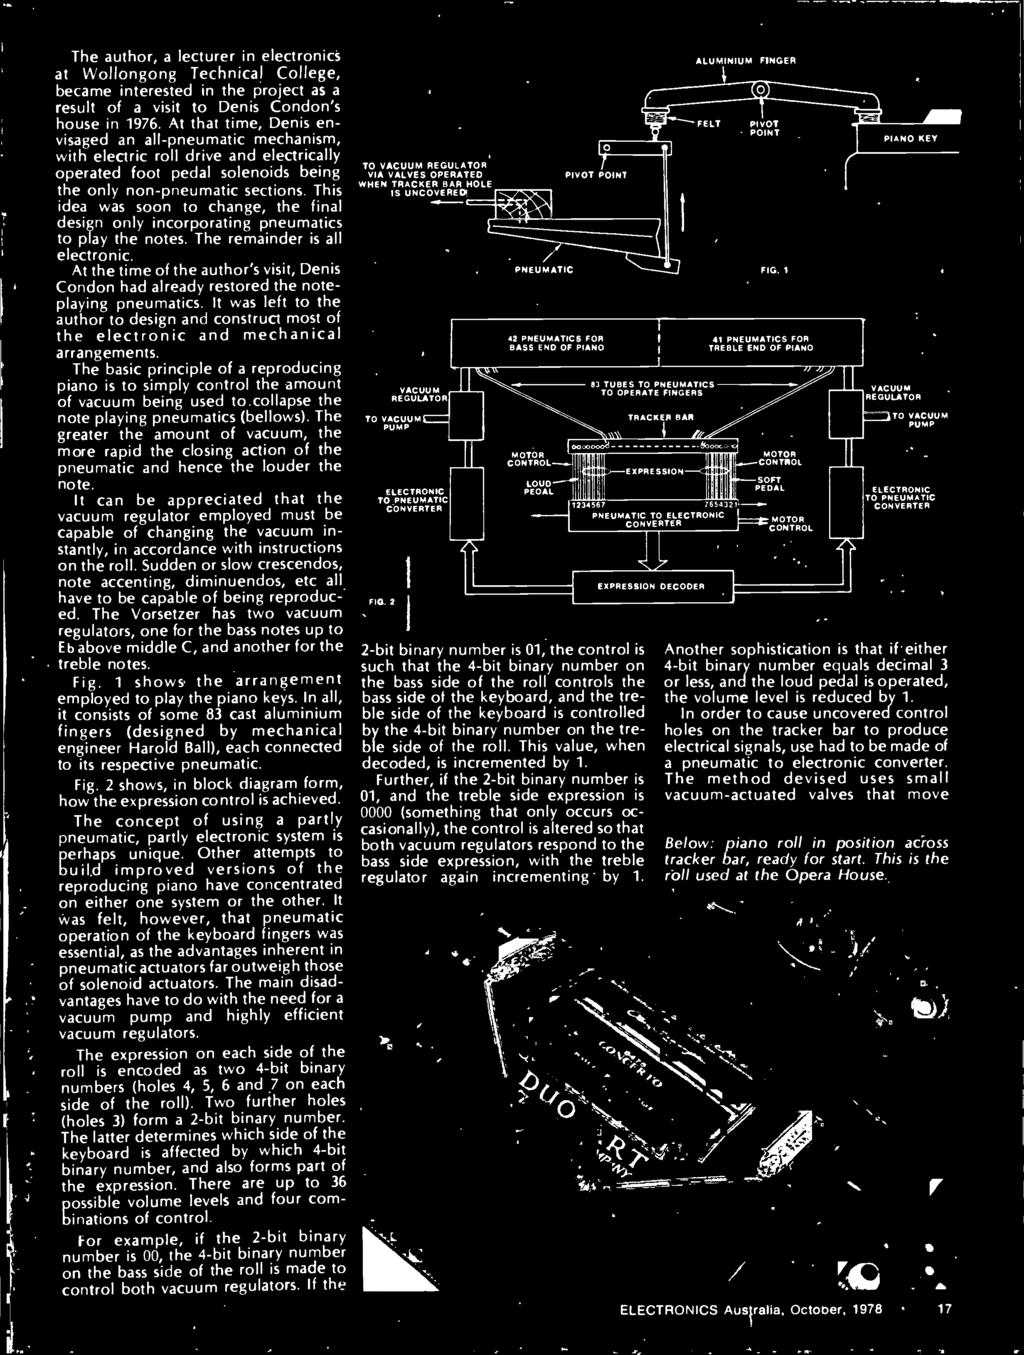 J I Lie With Cbandhifi Ne Vs Aust Nz 140 Cassettes Model Digital Code Lock Electronic Circuits And Diagramelectronics It Was Left To The Author Design Construct Most Of Mechanical